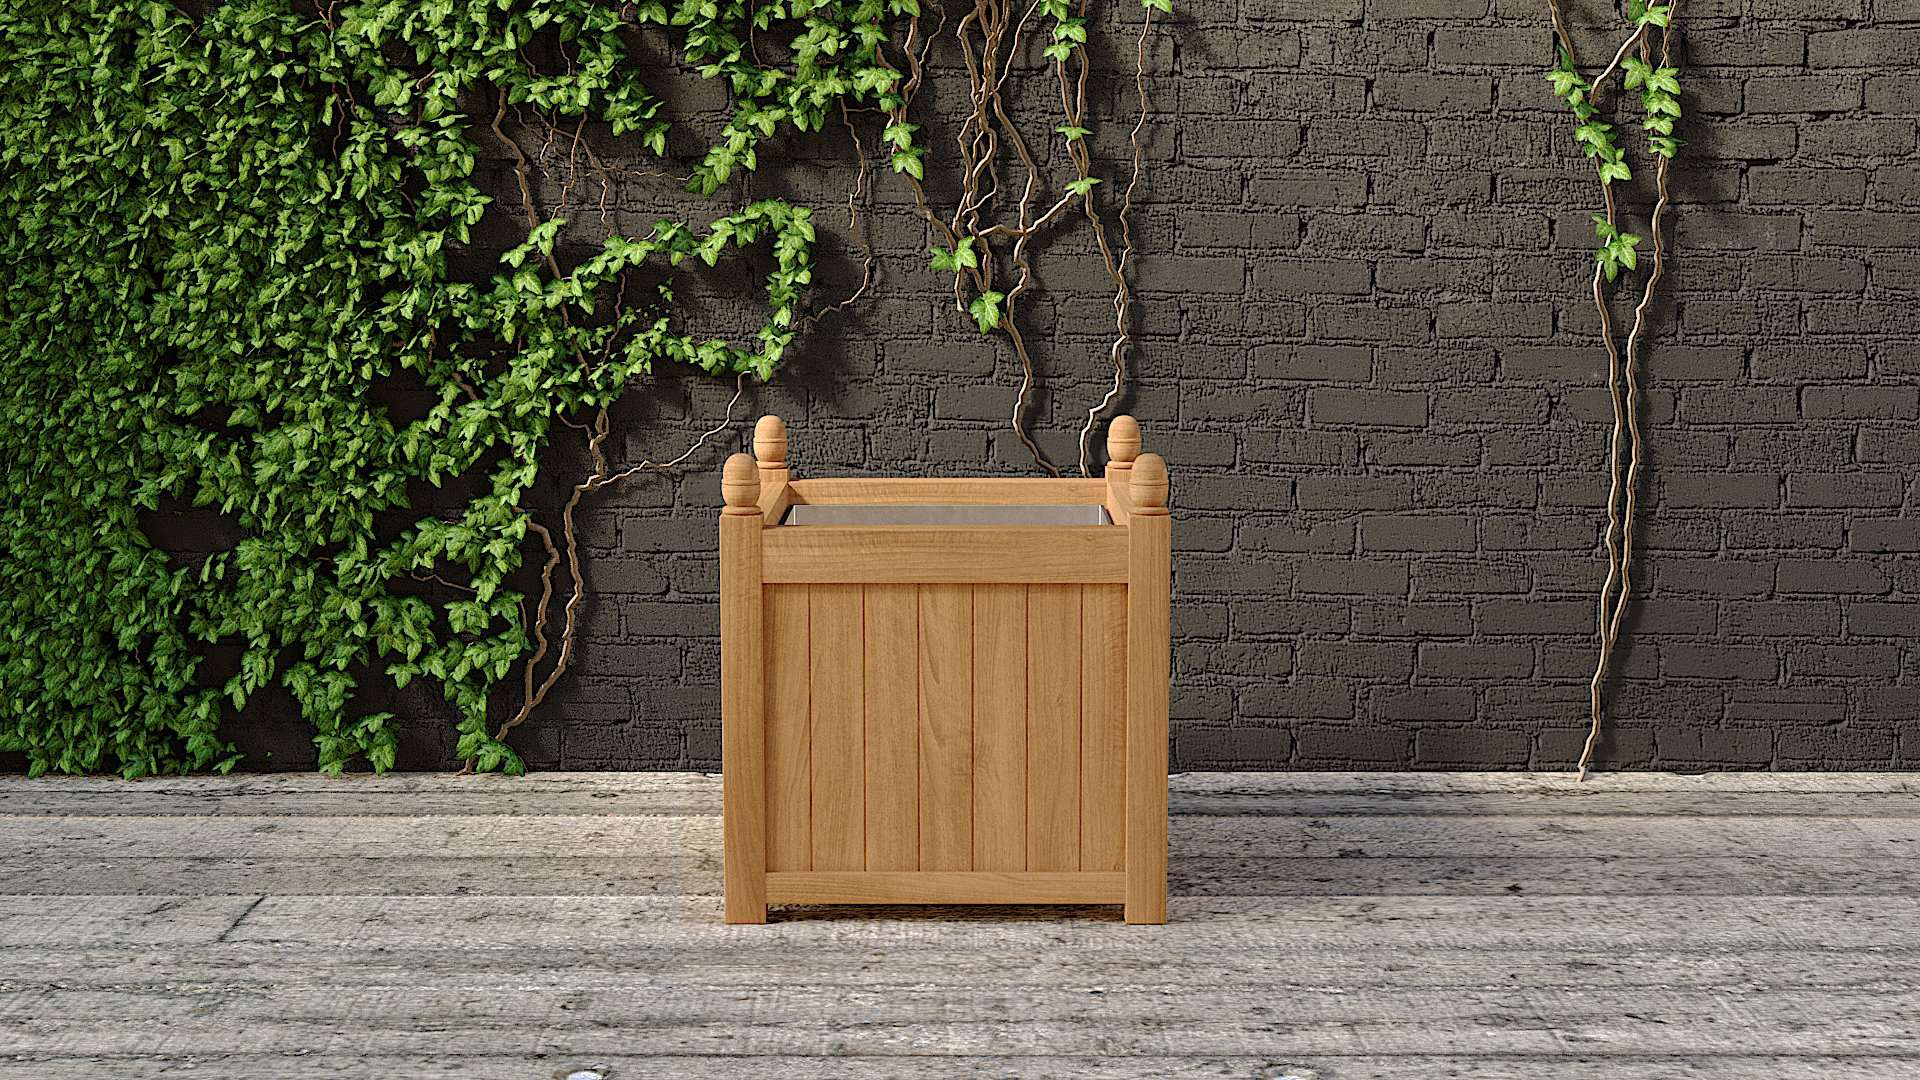 Galvanised Large Garden Planter 75 x 75cm  - Chic Teak® | Luxury Teak Furniture